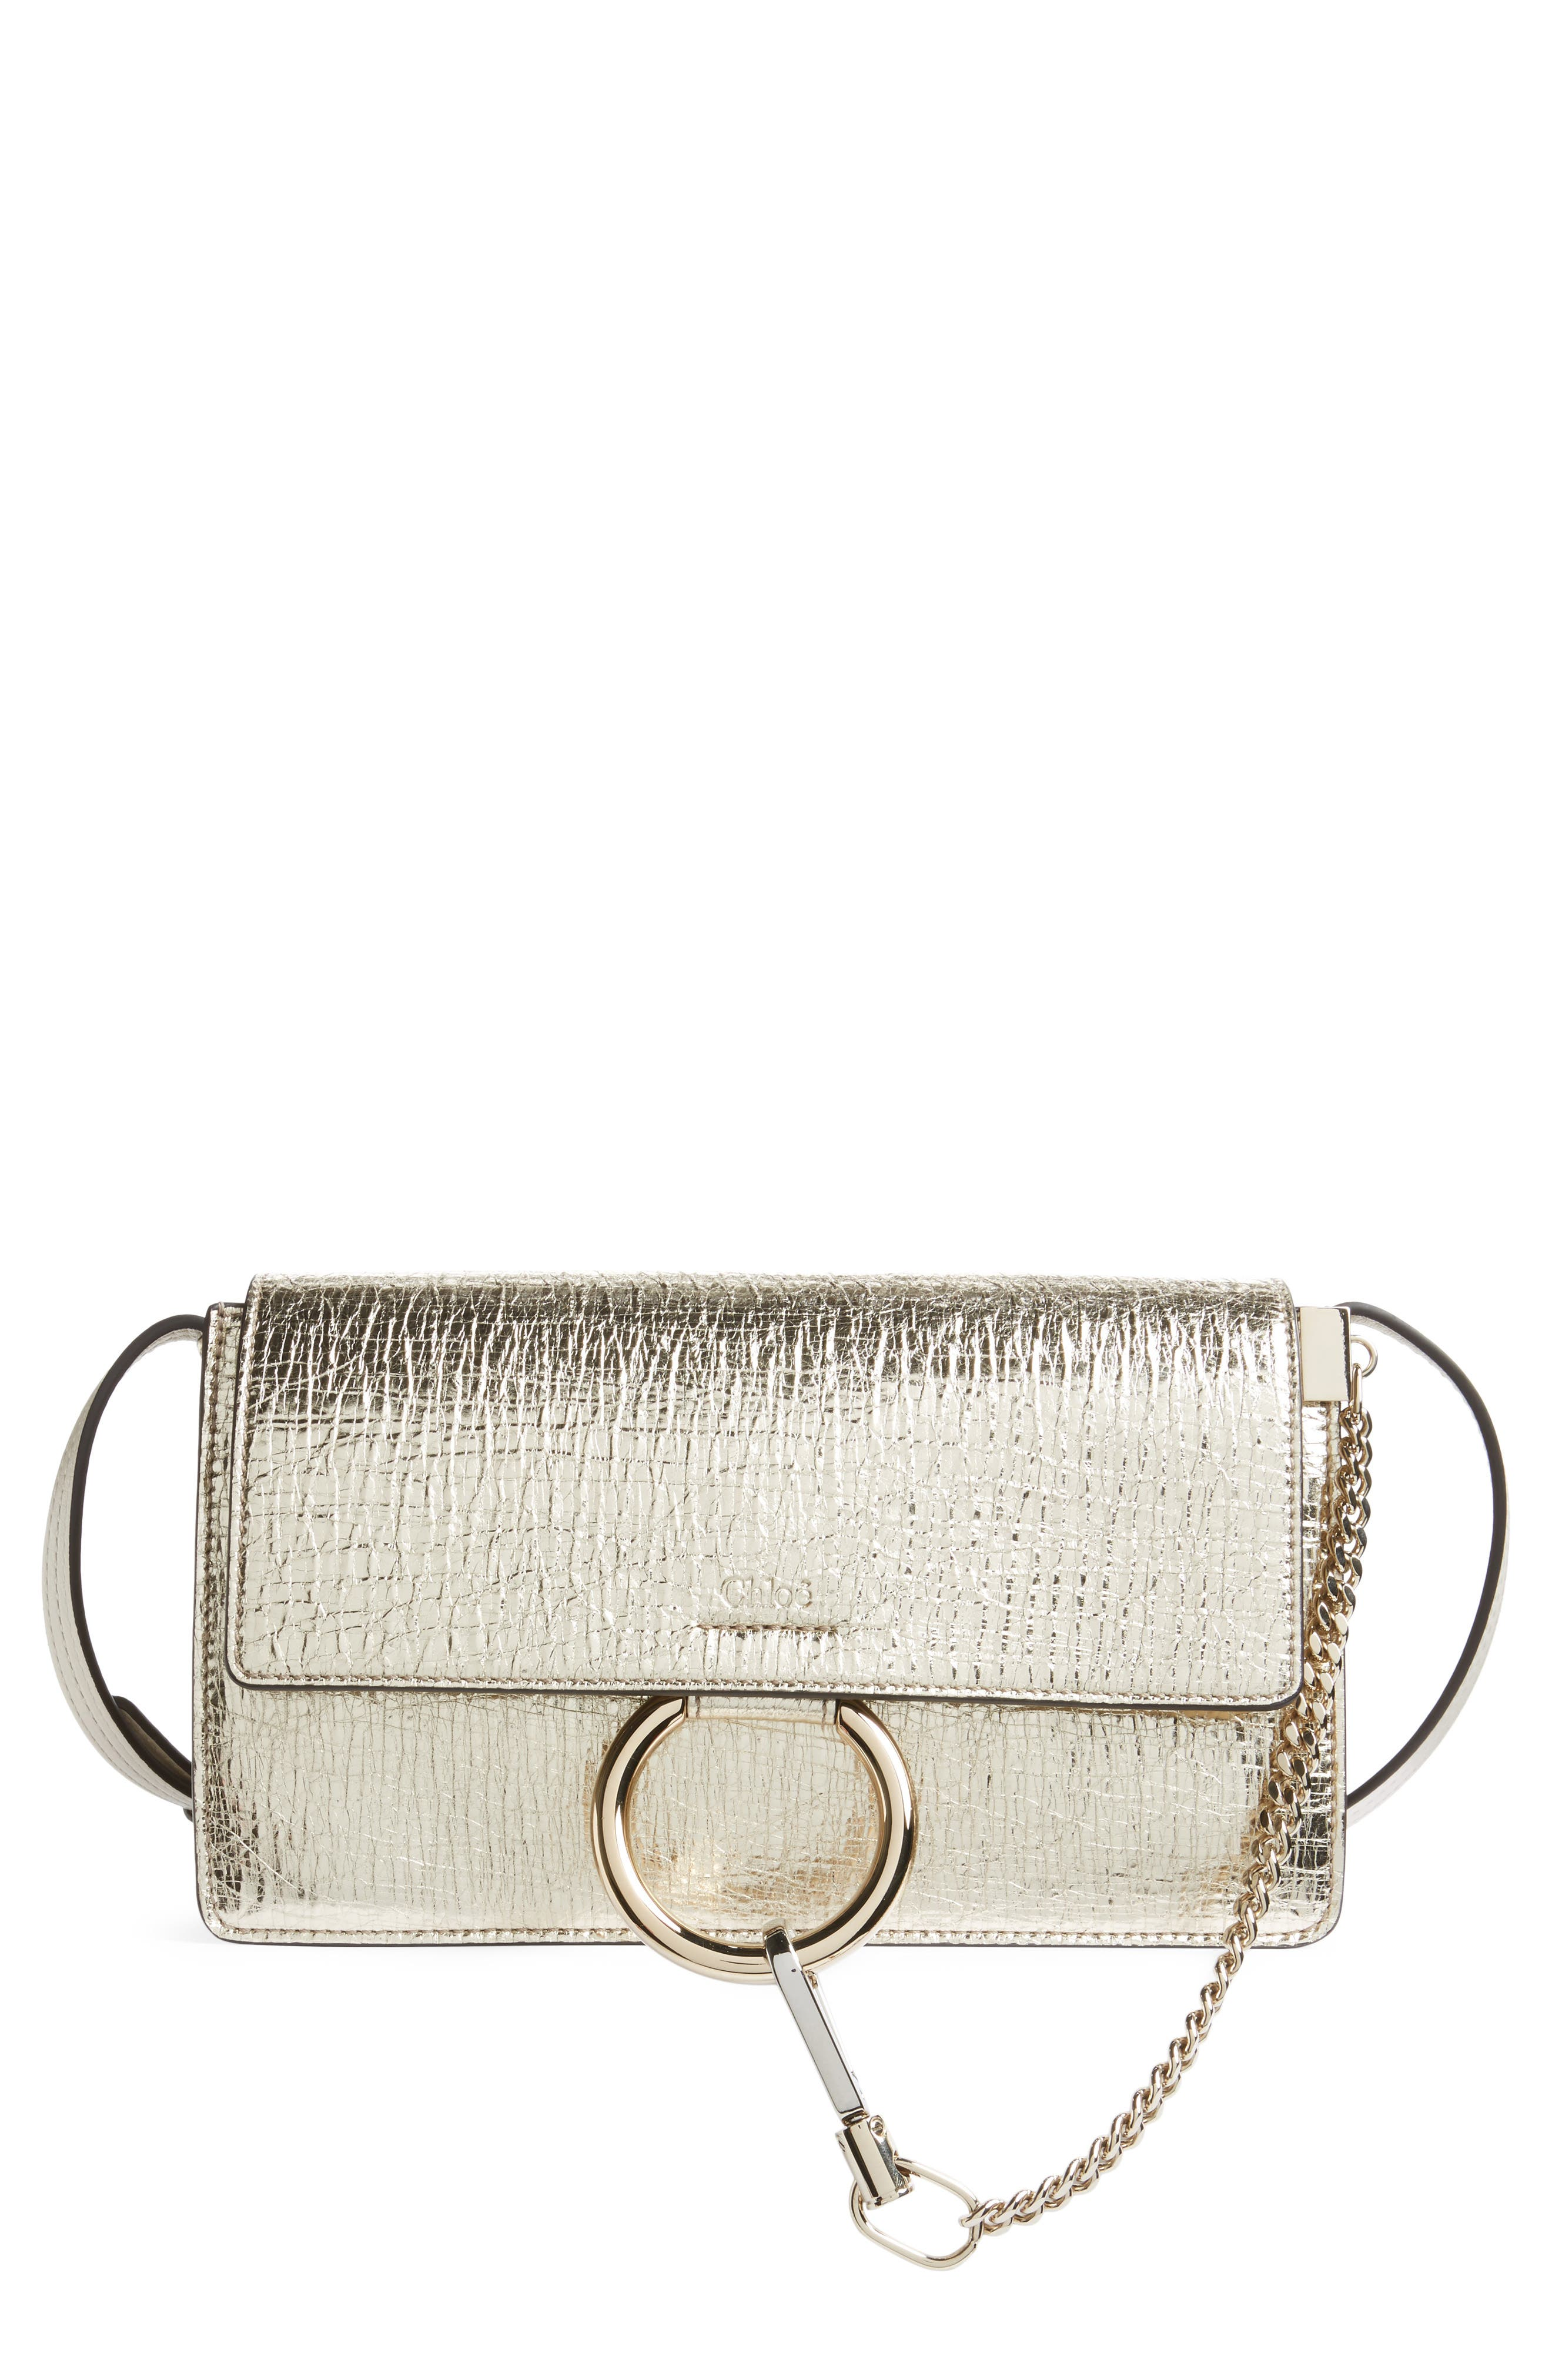 Chloé Small Faye Metallic Leather Shoulder Bag